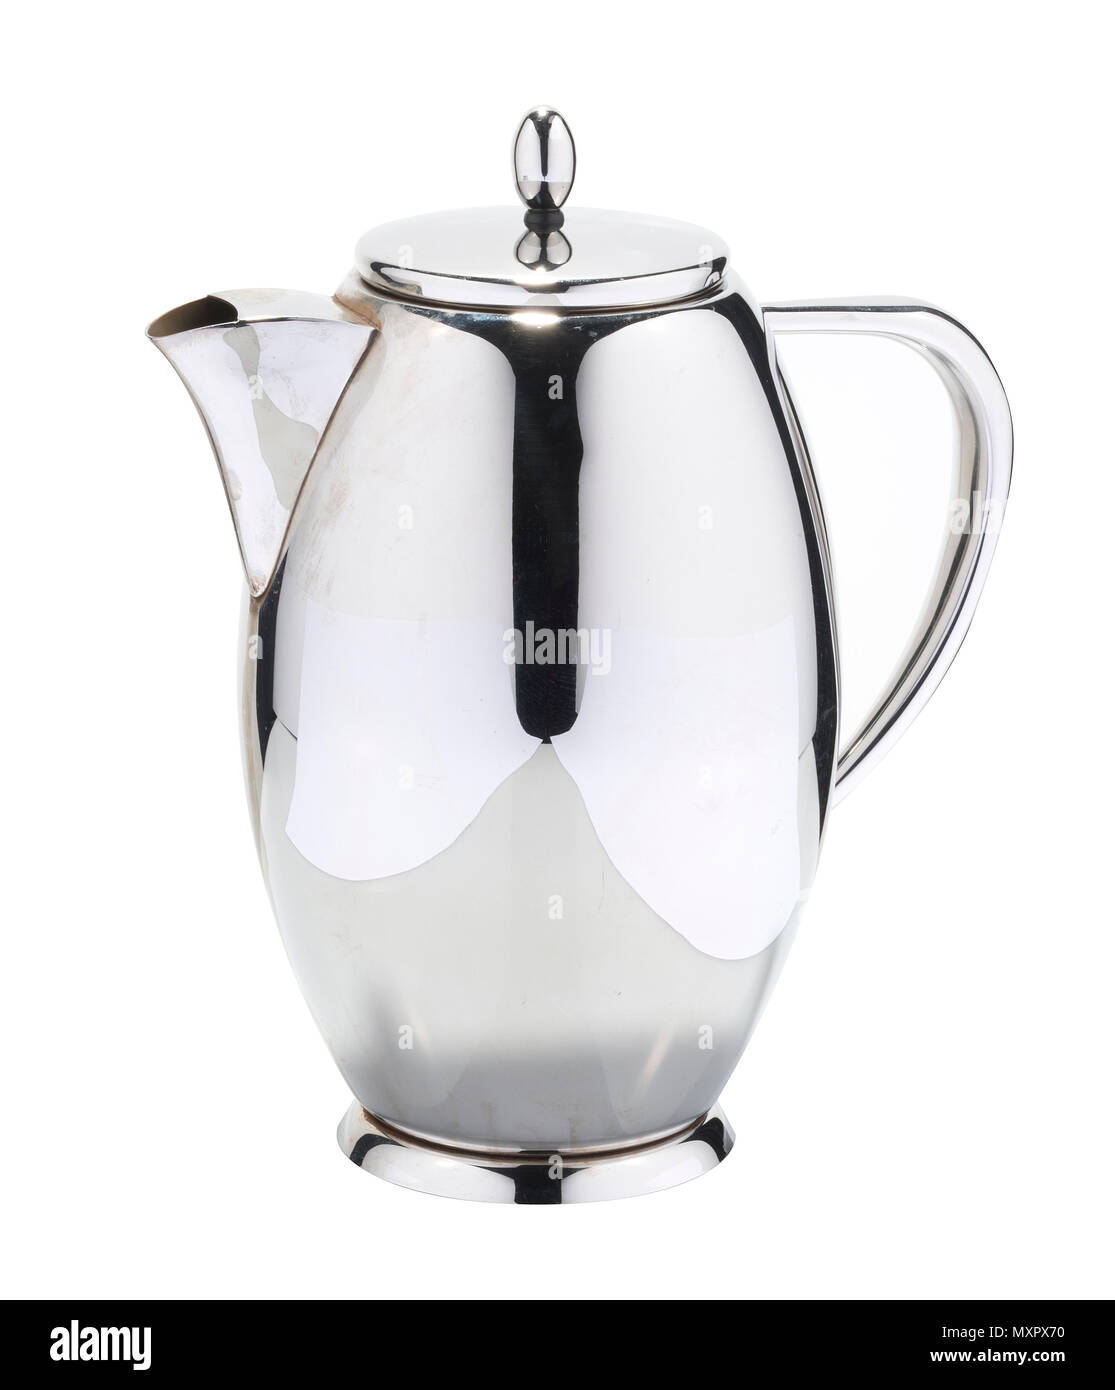 Teapot used mainly in the catering industry. Stainless steel, silver coloured teapot. - Stock Image